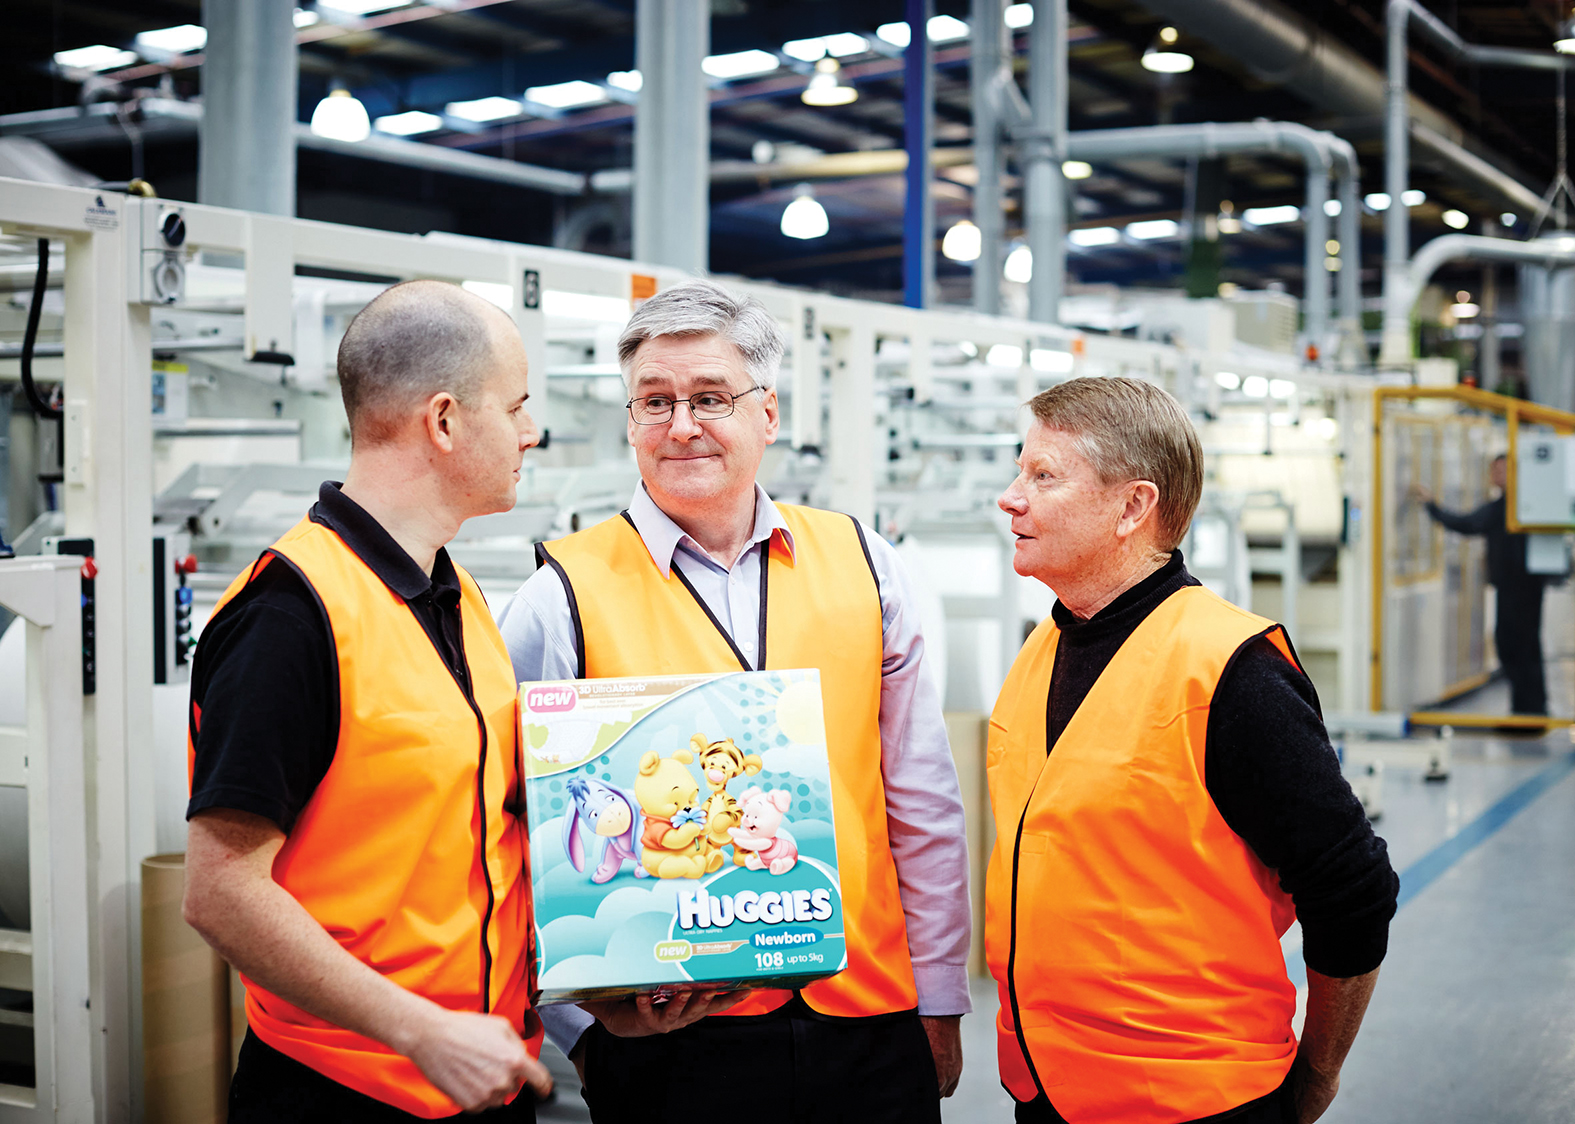 Andy Butler, Phil Butler and Dr Niall Finn standing in front of warehouse factory equipment at Textor's Tullamarine premises in Victoria.